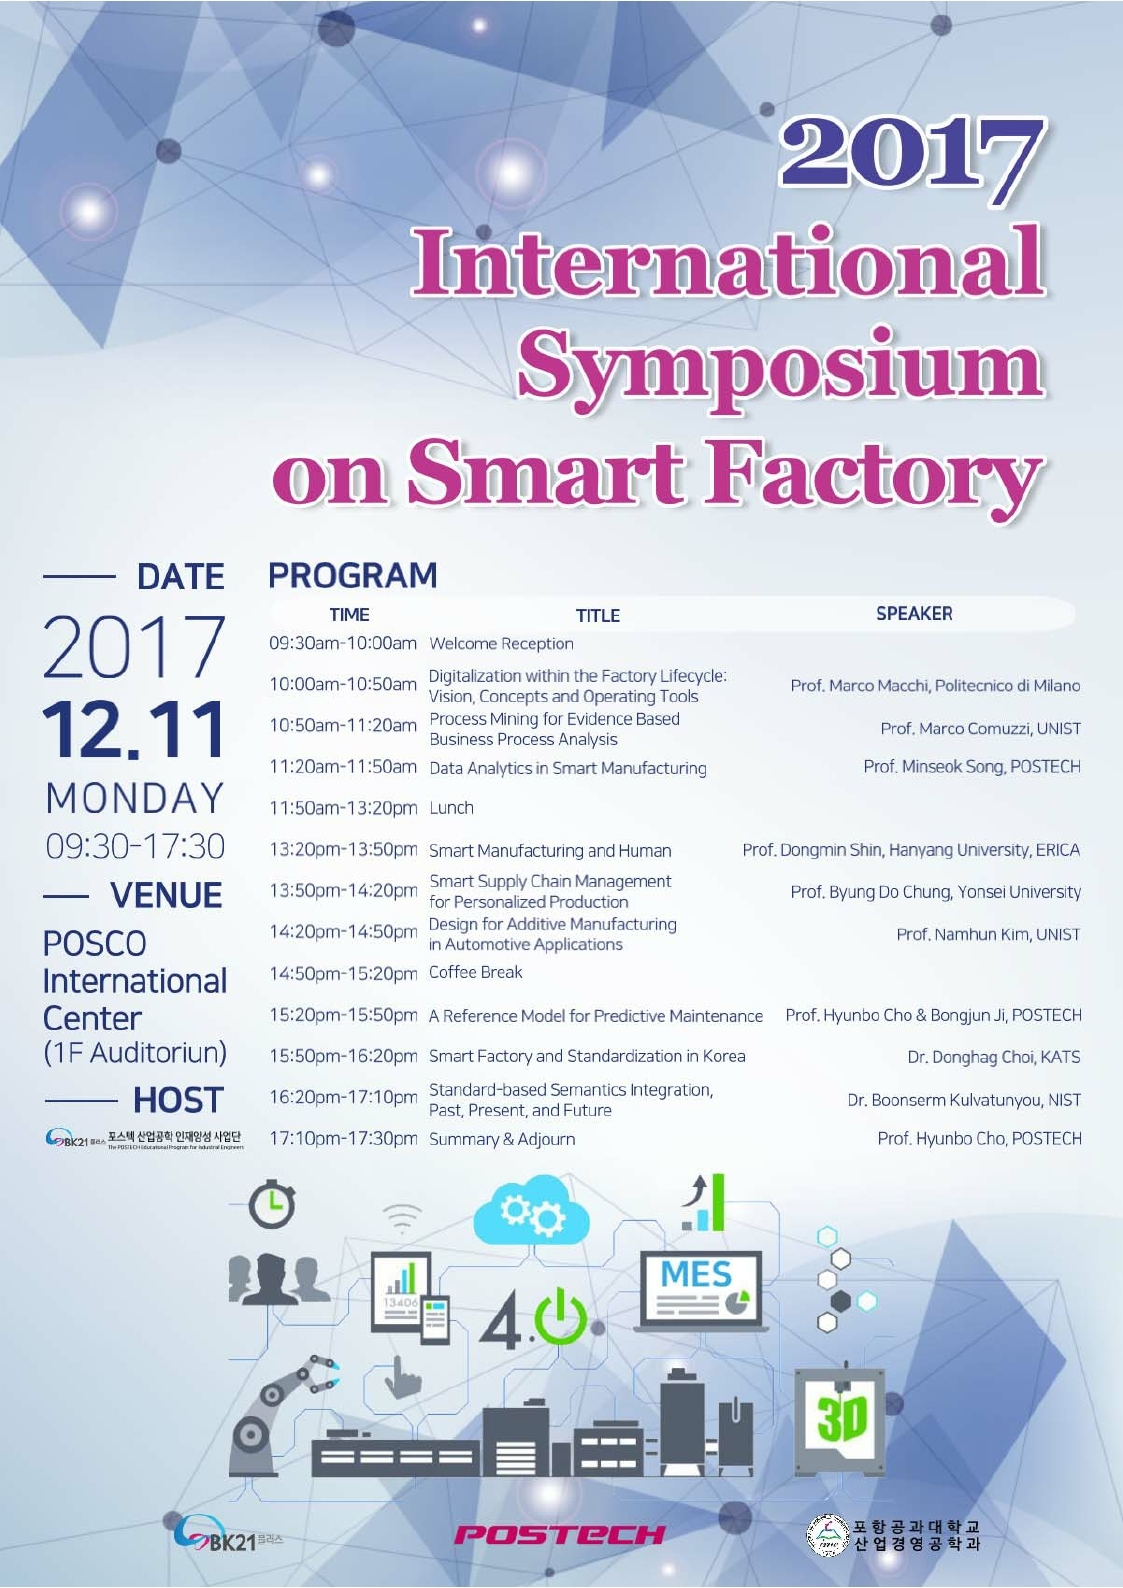 2017 International Symposium on Smart Factory